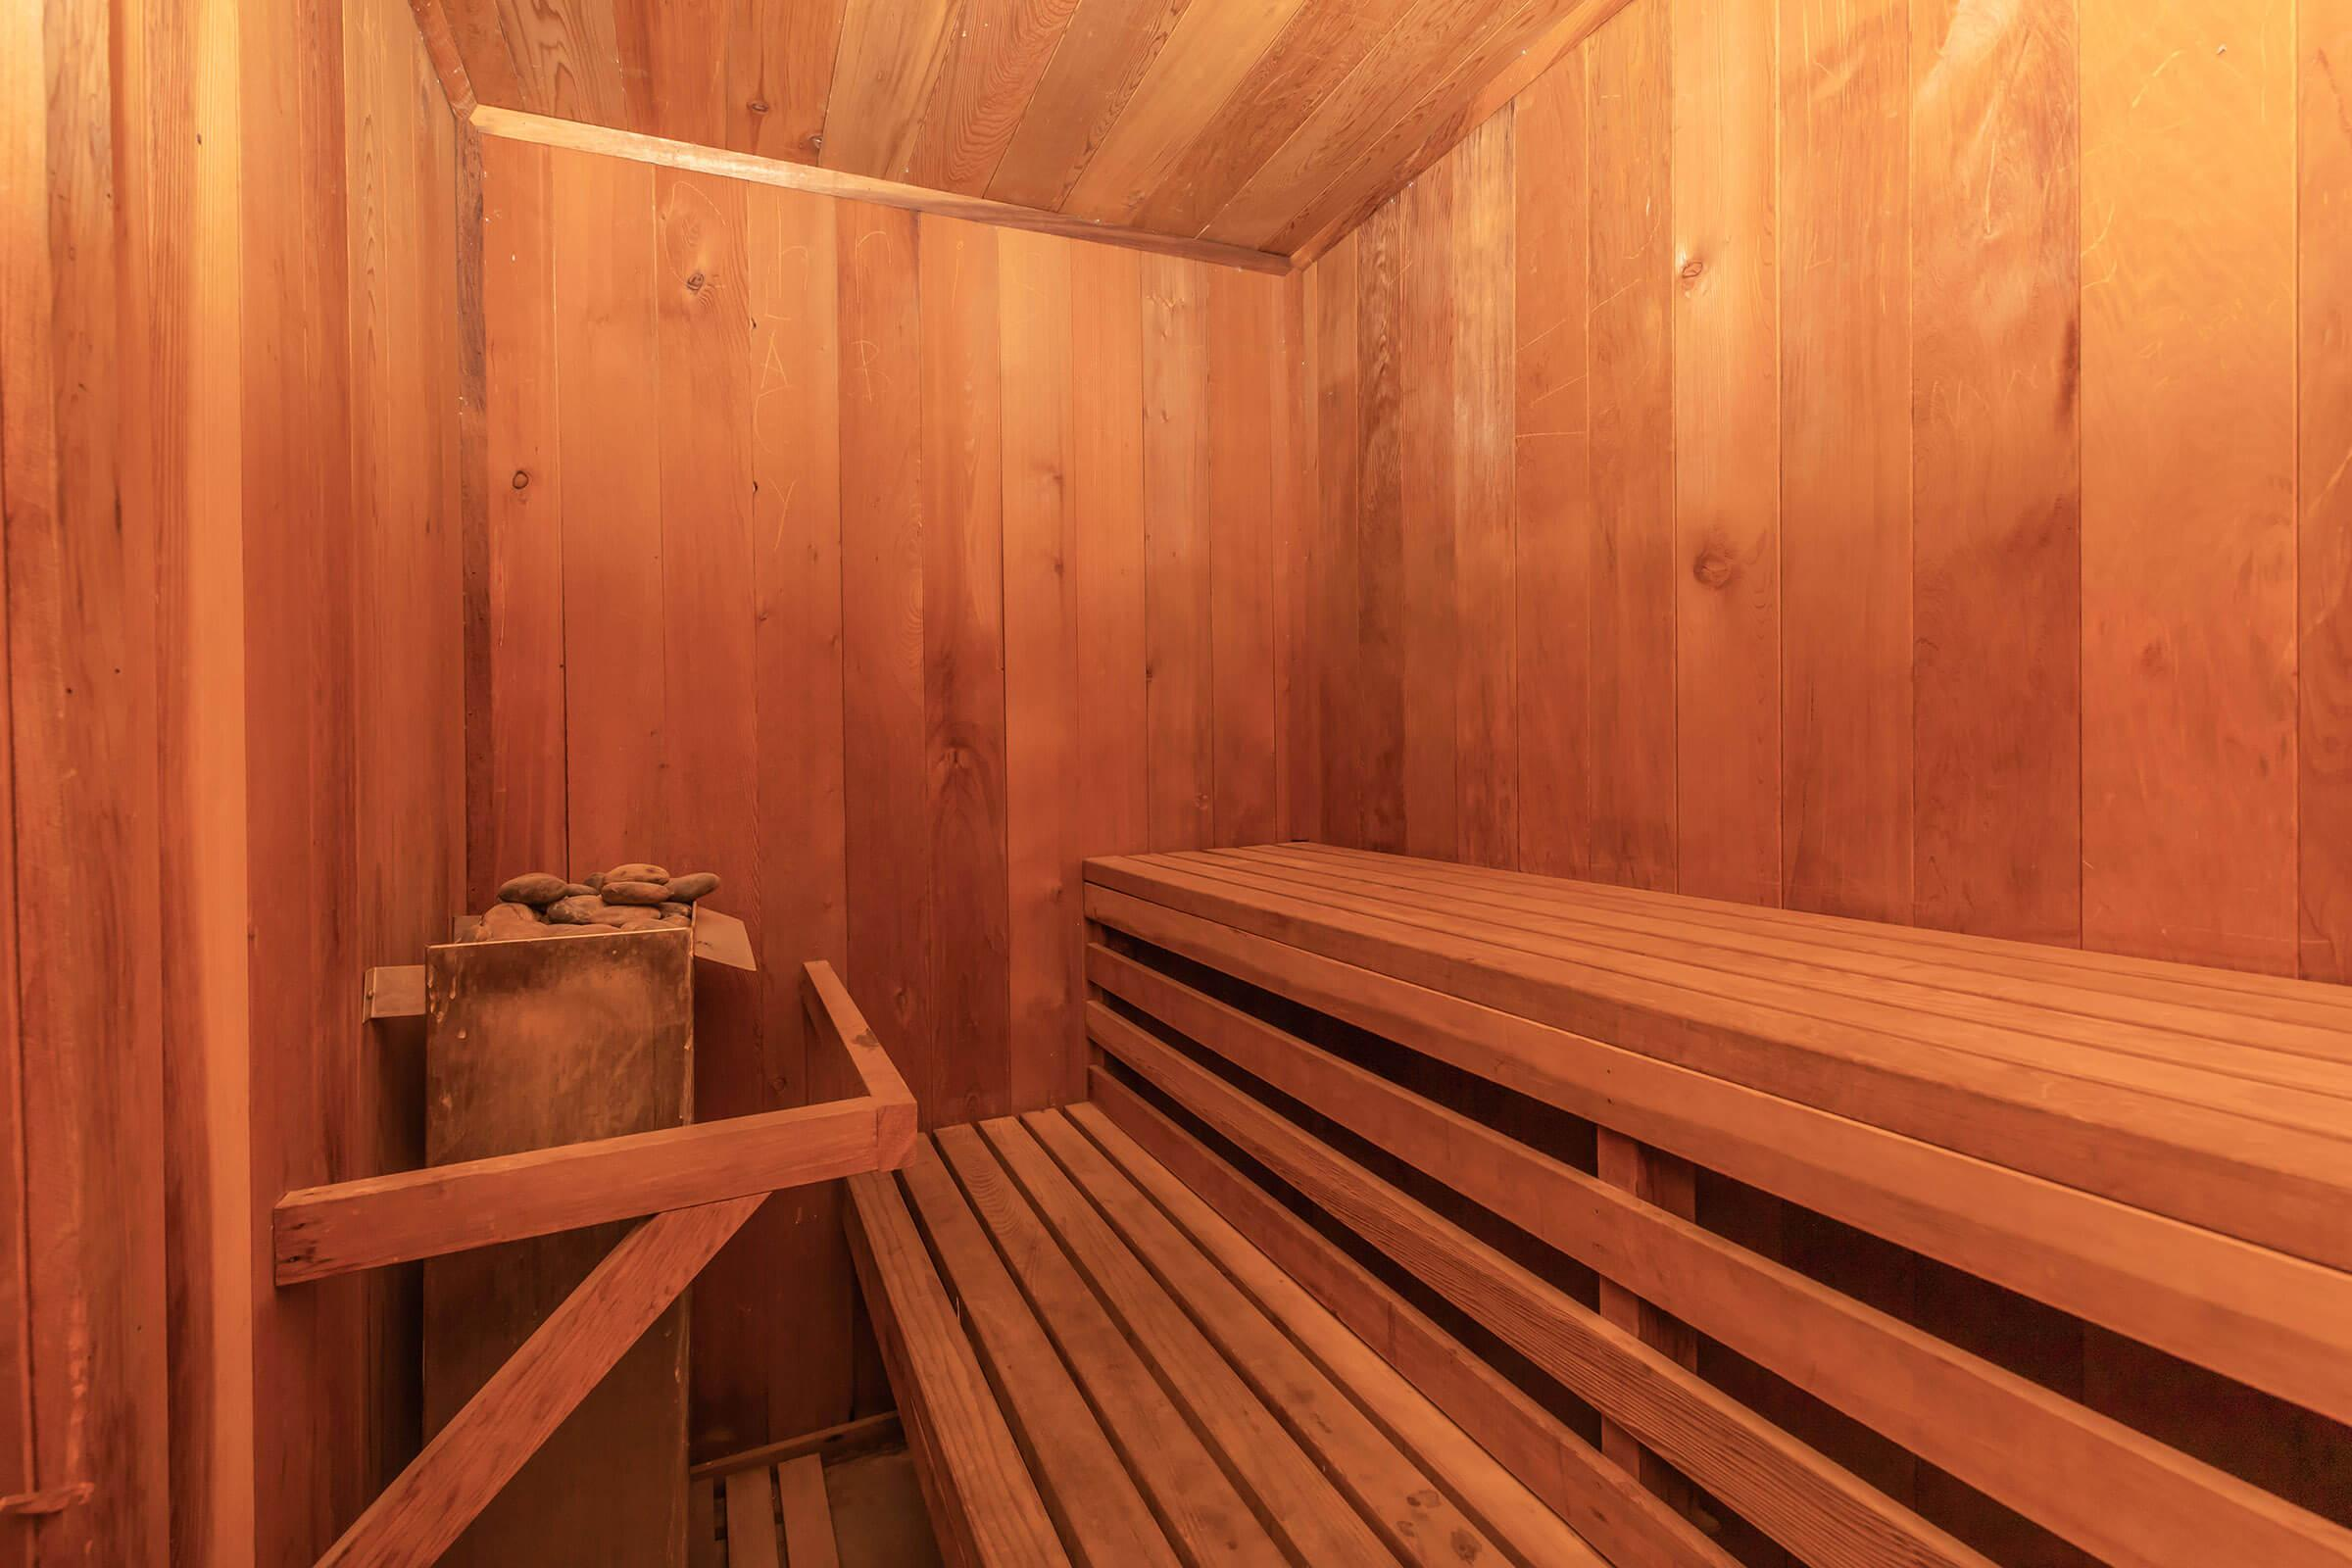 a room with a wooden fence